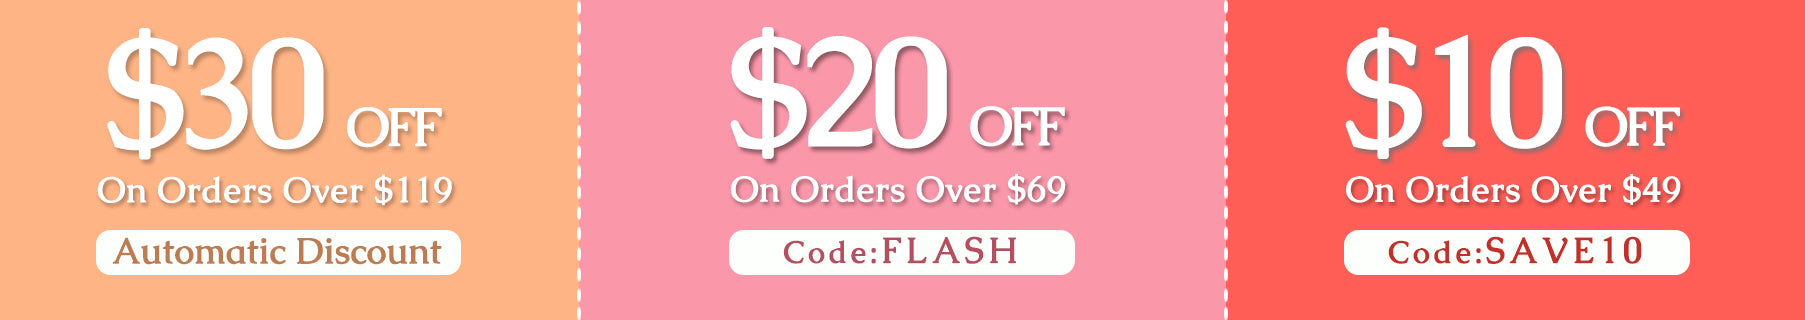 $30 OFF On Orders Over $119 (Automatic Discount) $20 OFF On Orders Over $69 ( Coupon Code: FLASH) $10 OFF On Orders Over $49 ( Coupon Code: SAVE10)